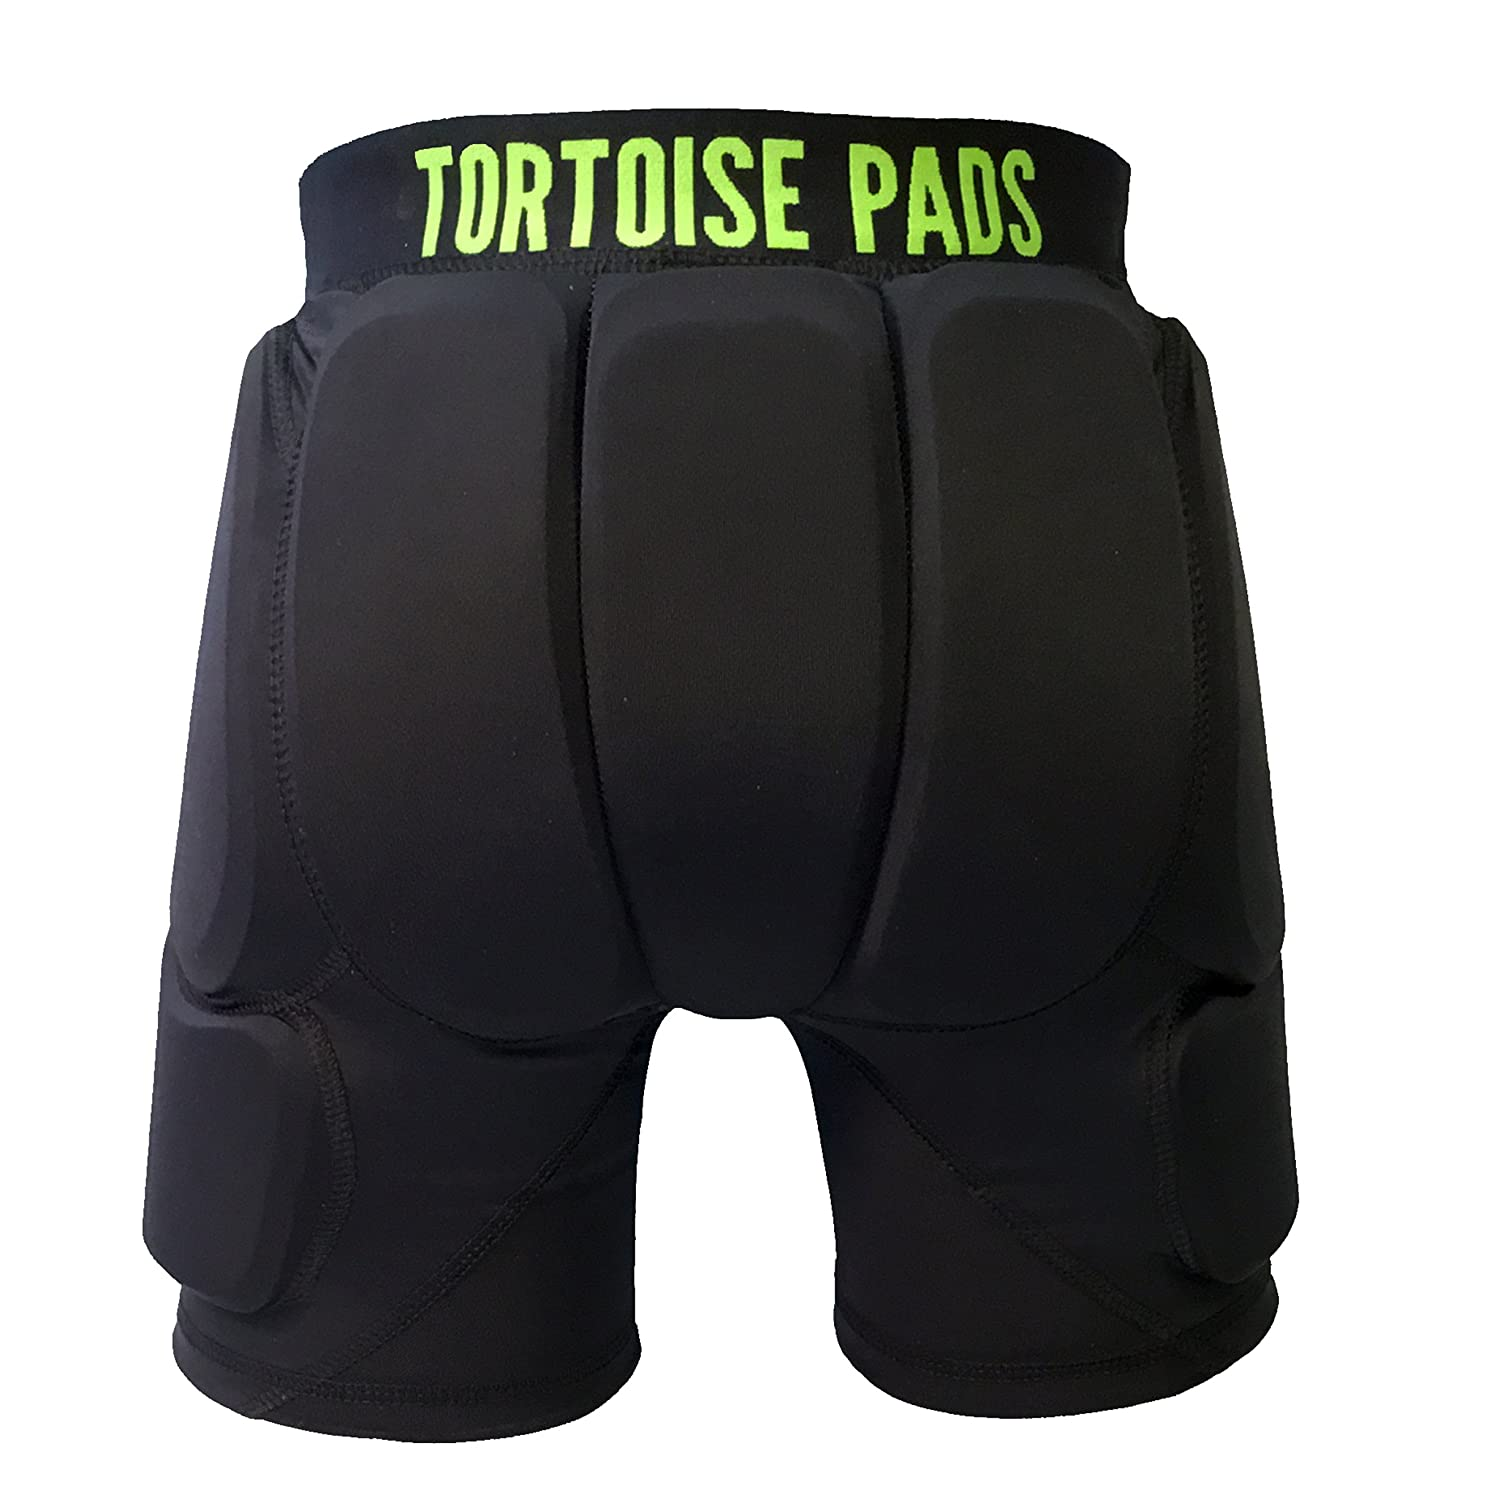 Tortoise Pads T2 – High Impact Protection – Padded Shorts with Firm Multi-Layer Multi-Density Foam